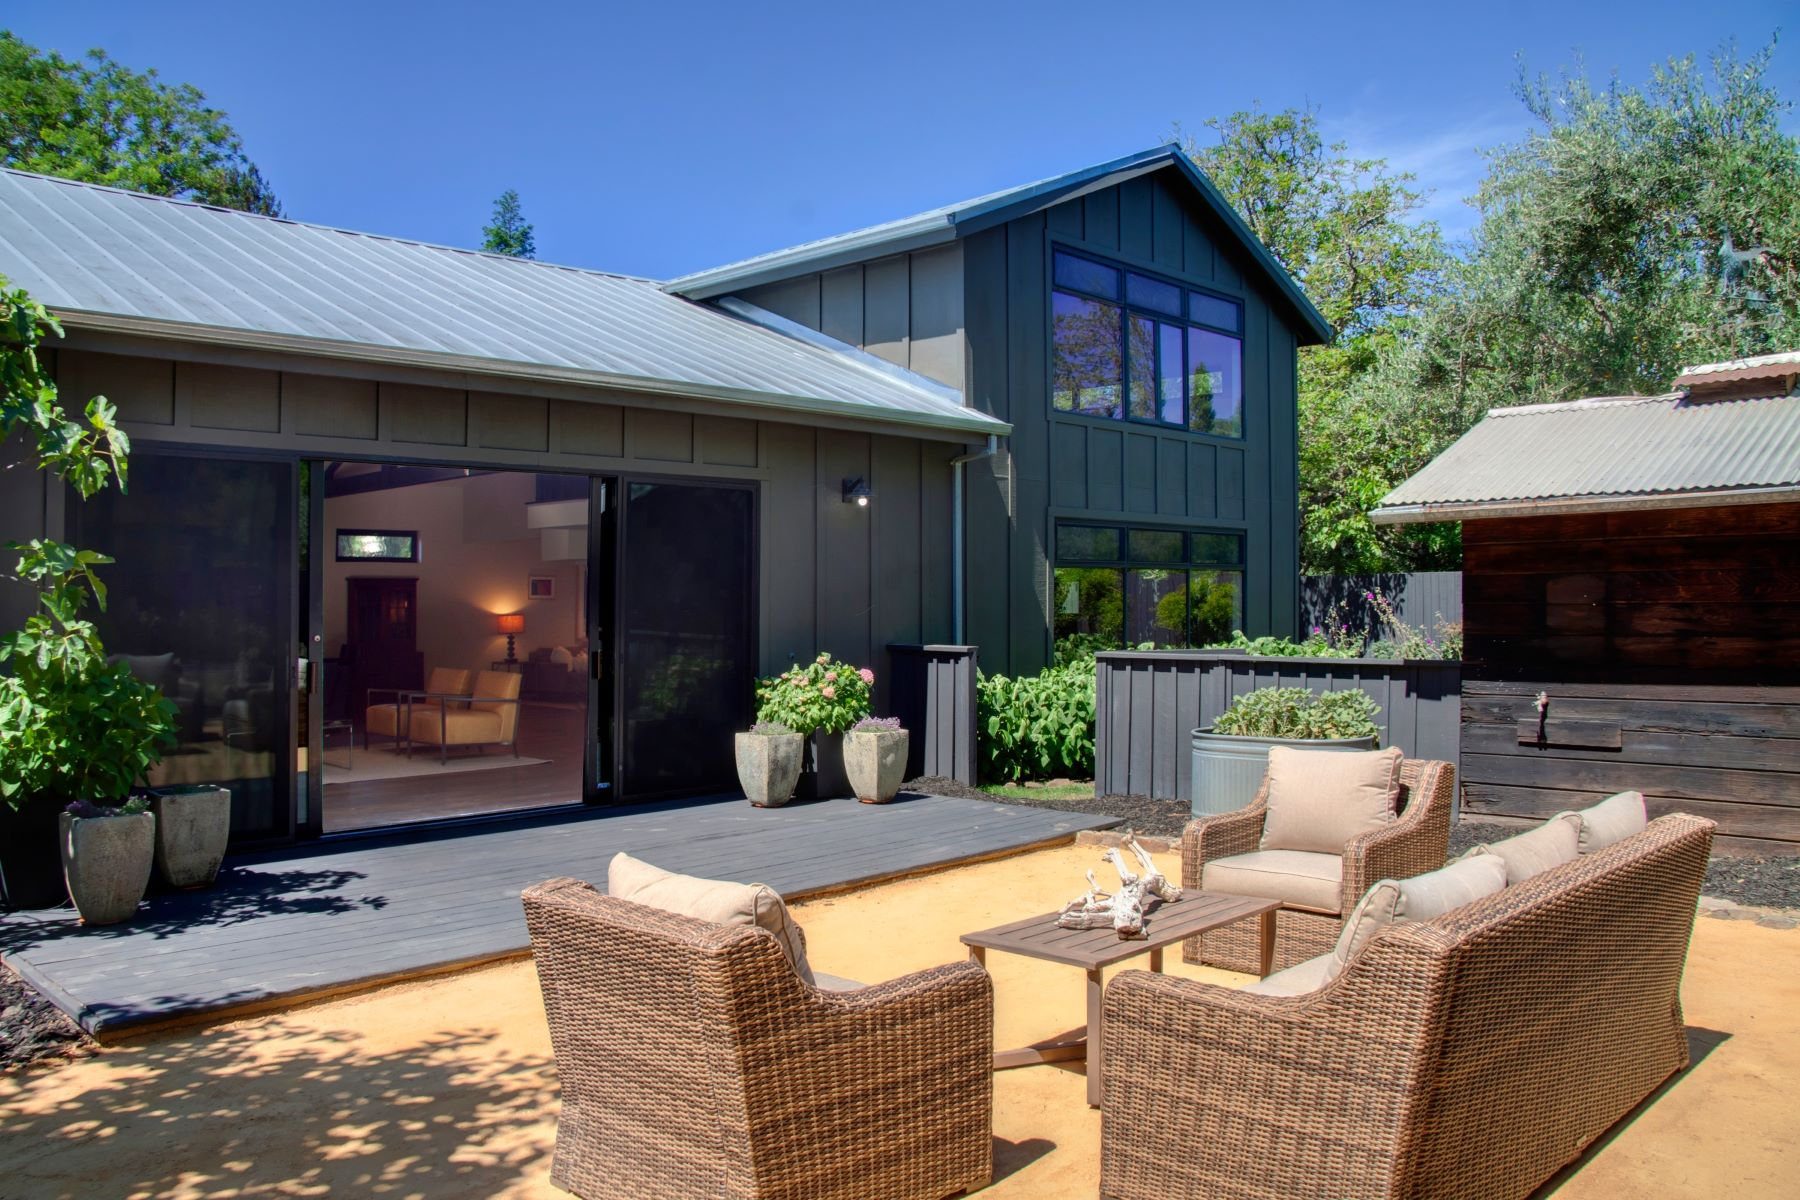 Single Family Homes for Sale at Napa Valley Modern Barn 1581 Centennial Circle Calistoga, California 94515 United States